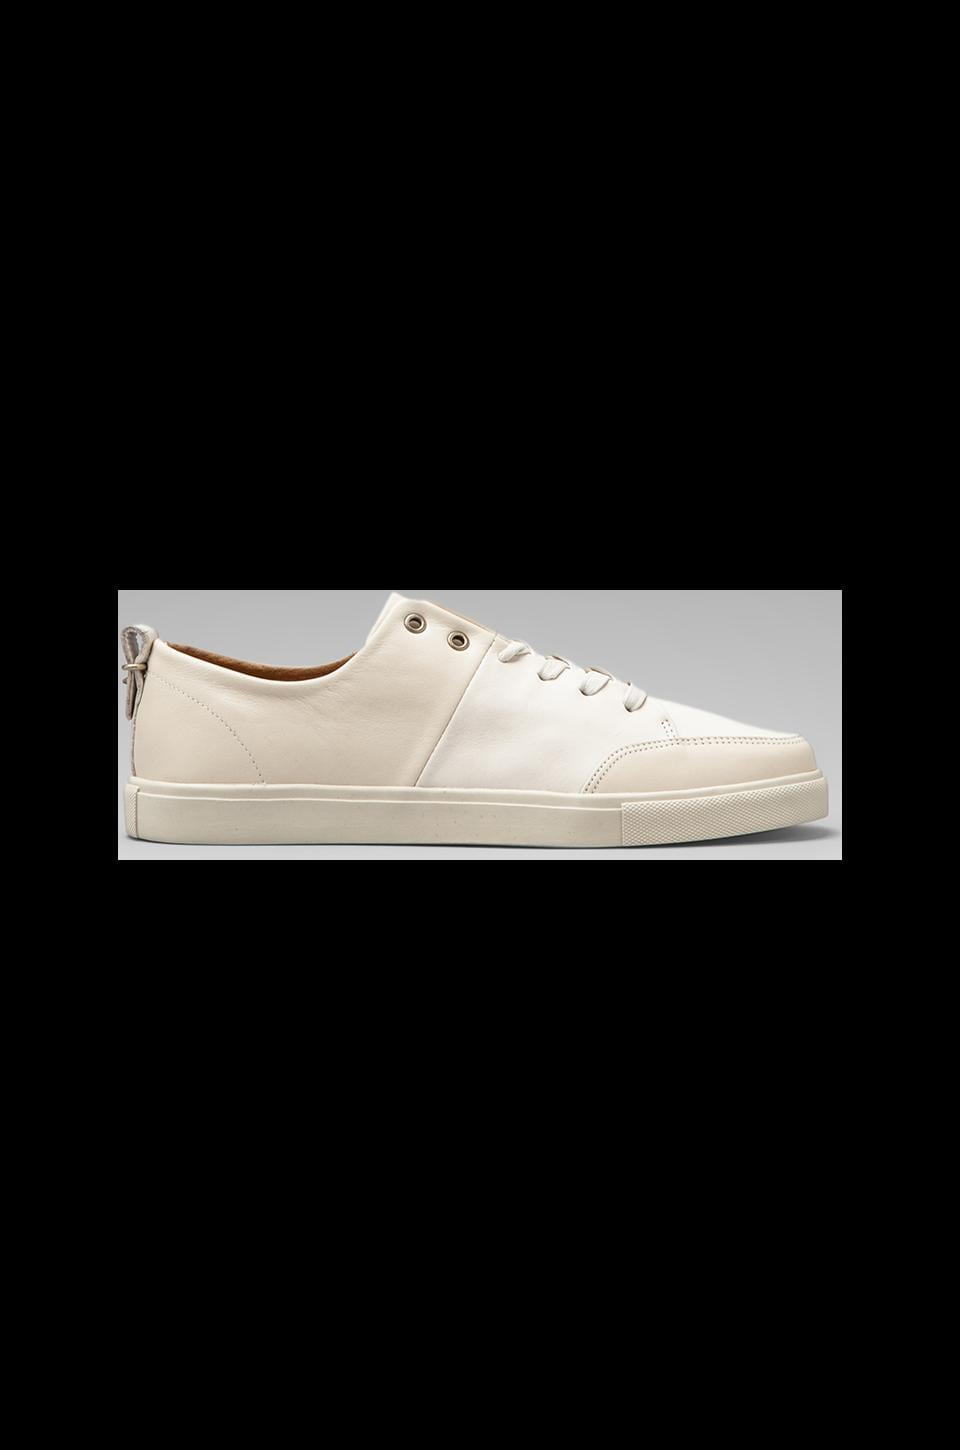 Haerfest Leather Trainers in Ivory/ Off White